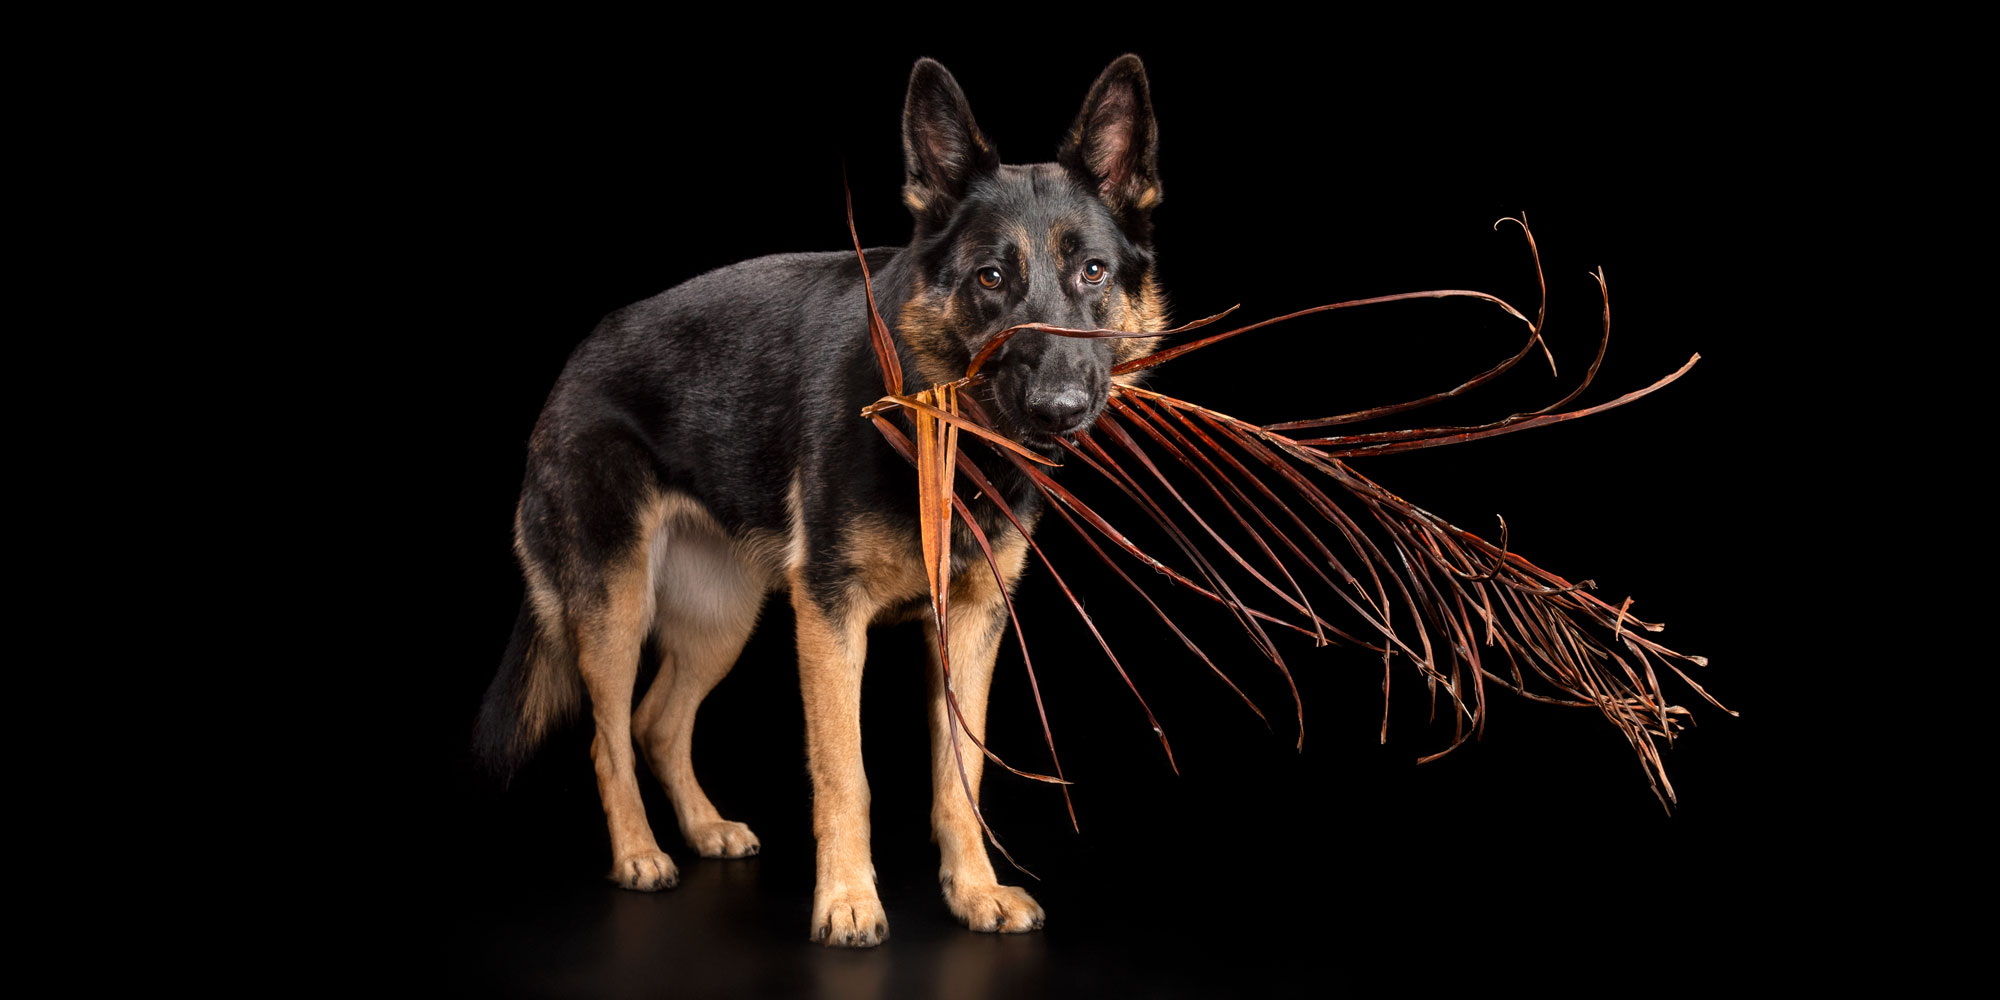 female german shepherd dog with palm frond in mouth